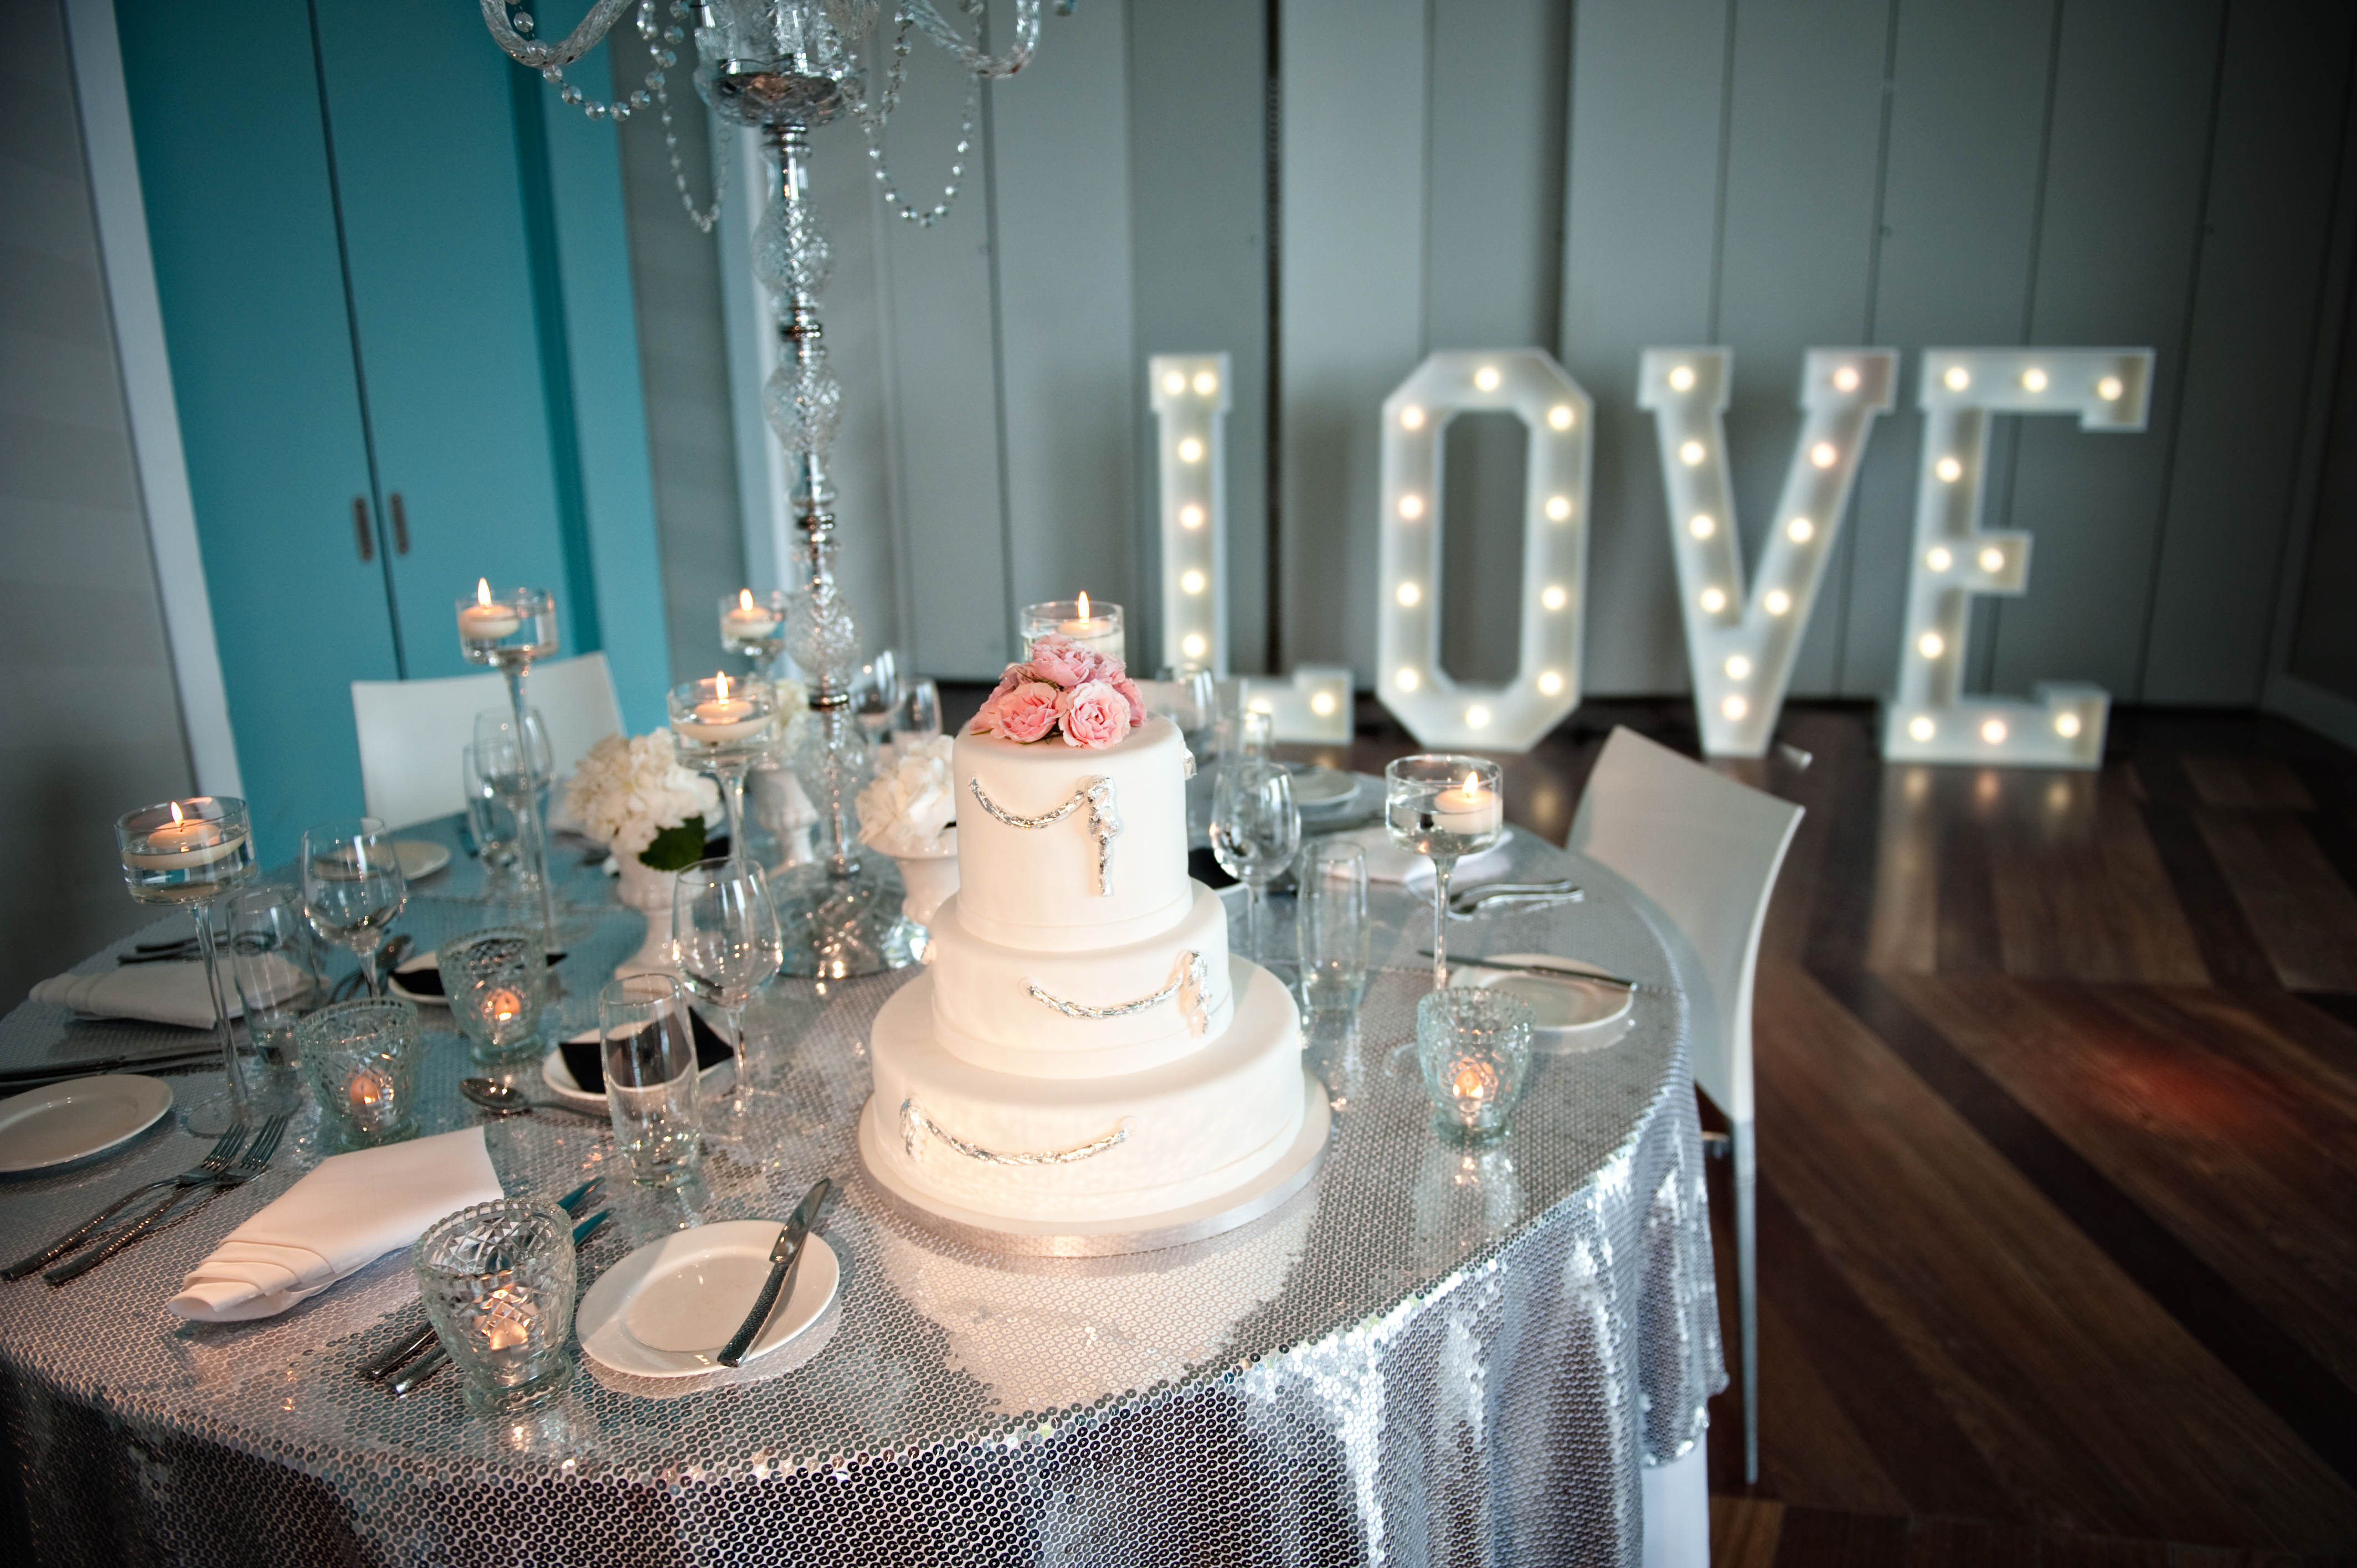 LOVE light up letters and cake!